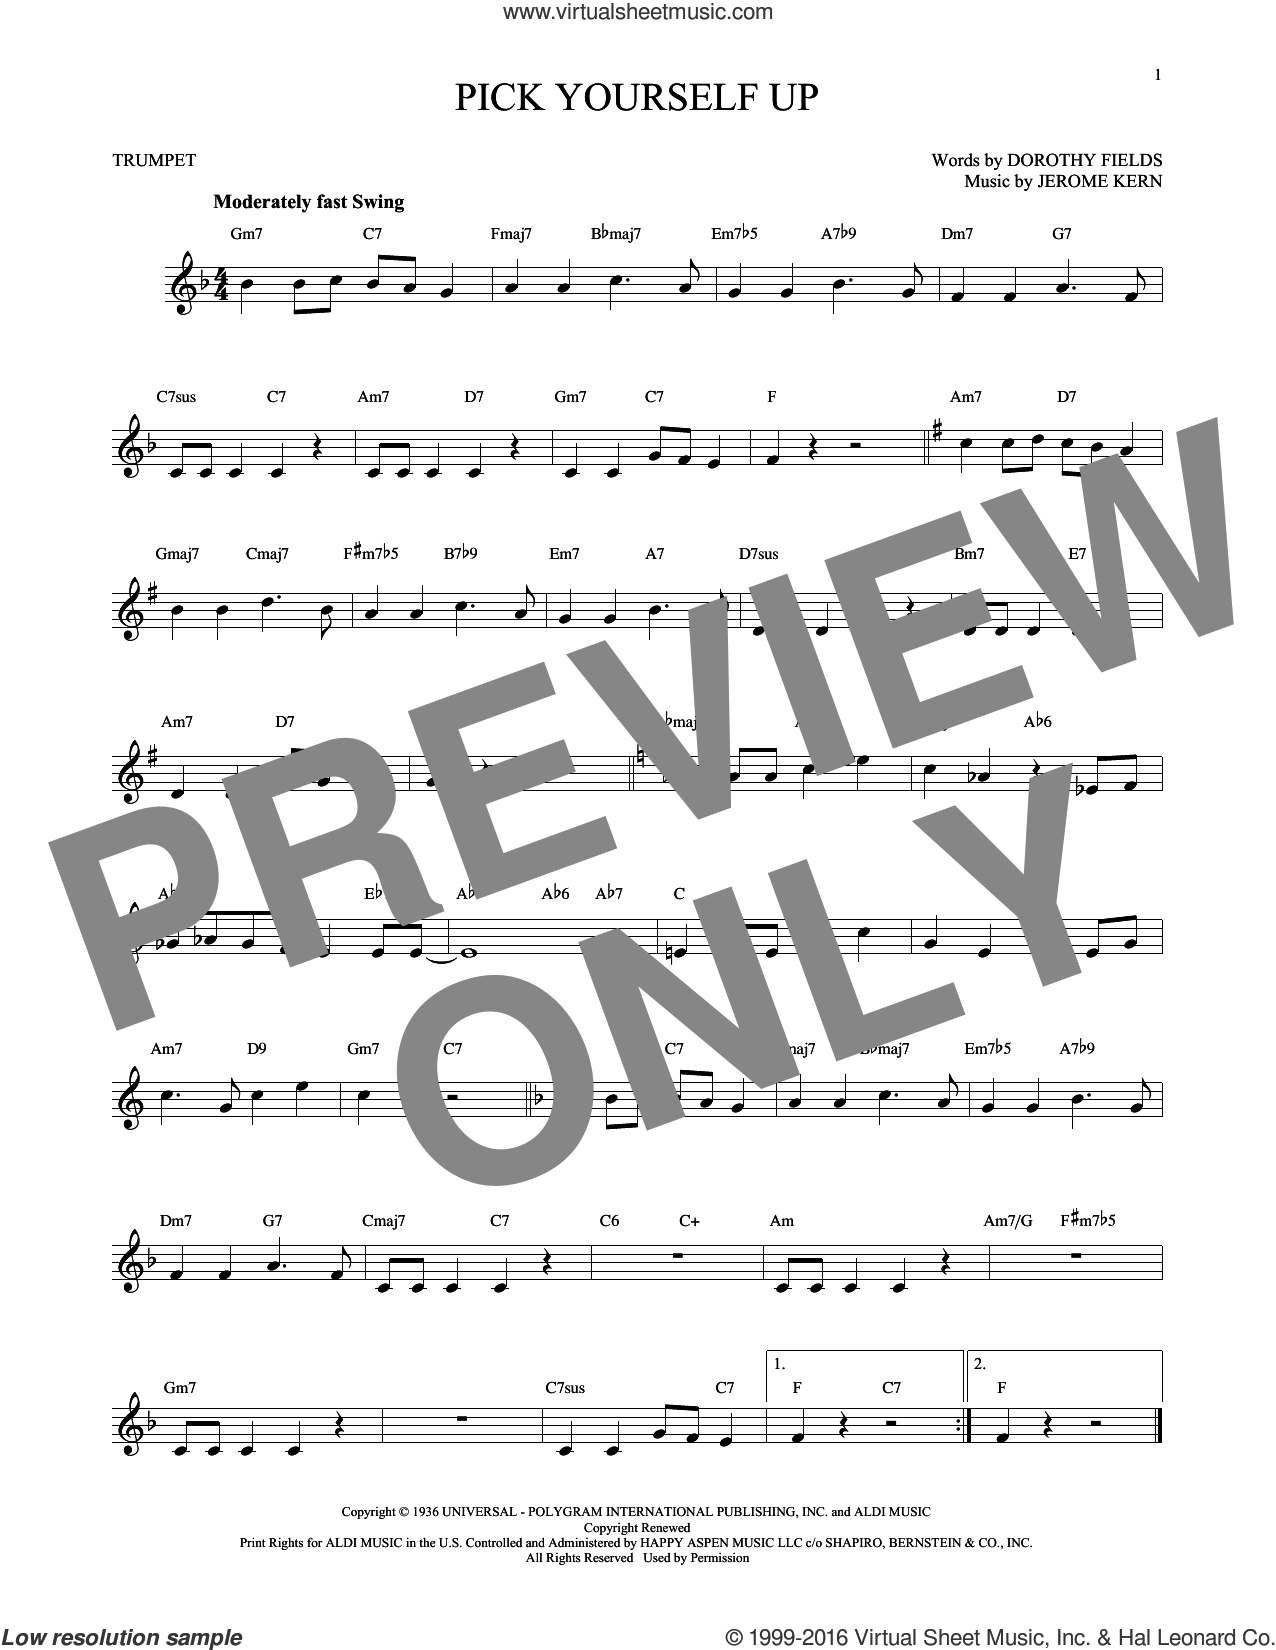 Pick Yourself Up sheet music for trumpet solo by Jerome Kern and Dorothy Fields, intermediate skill level